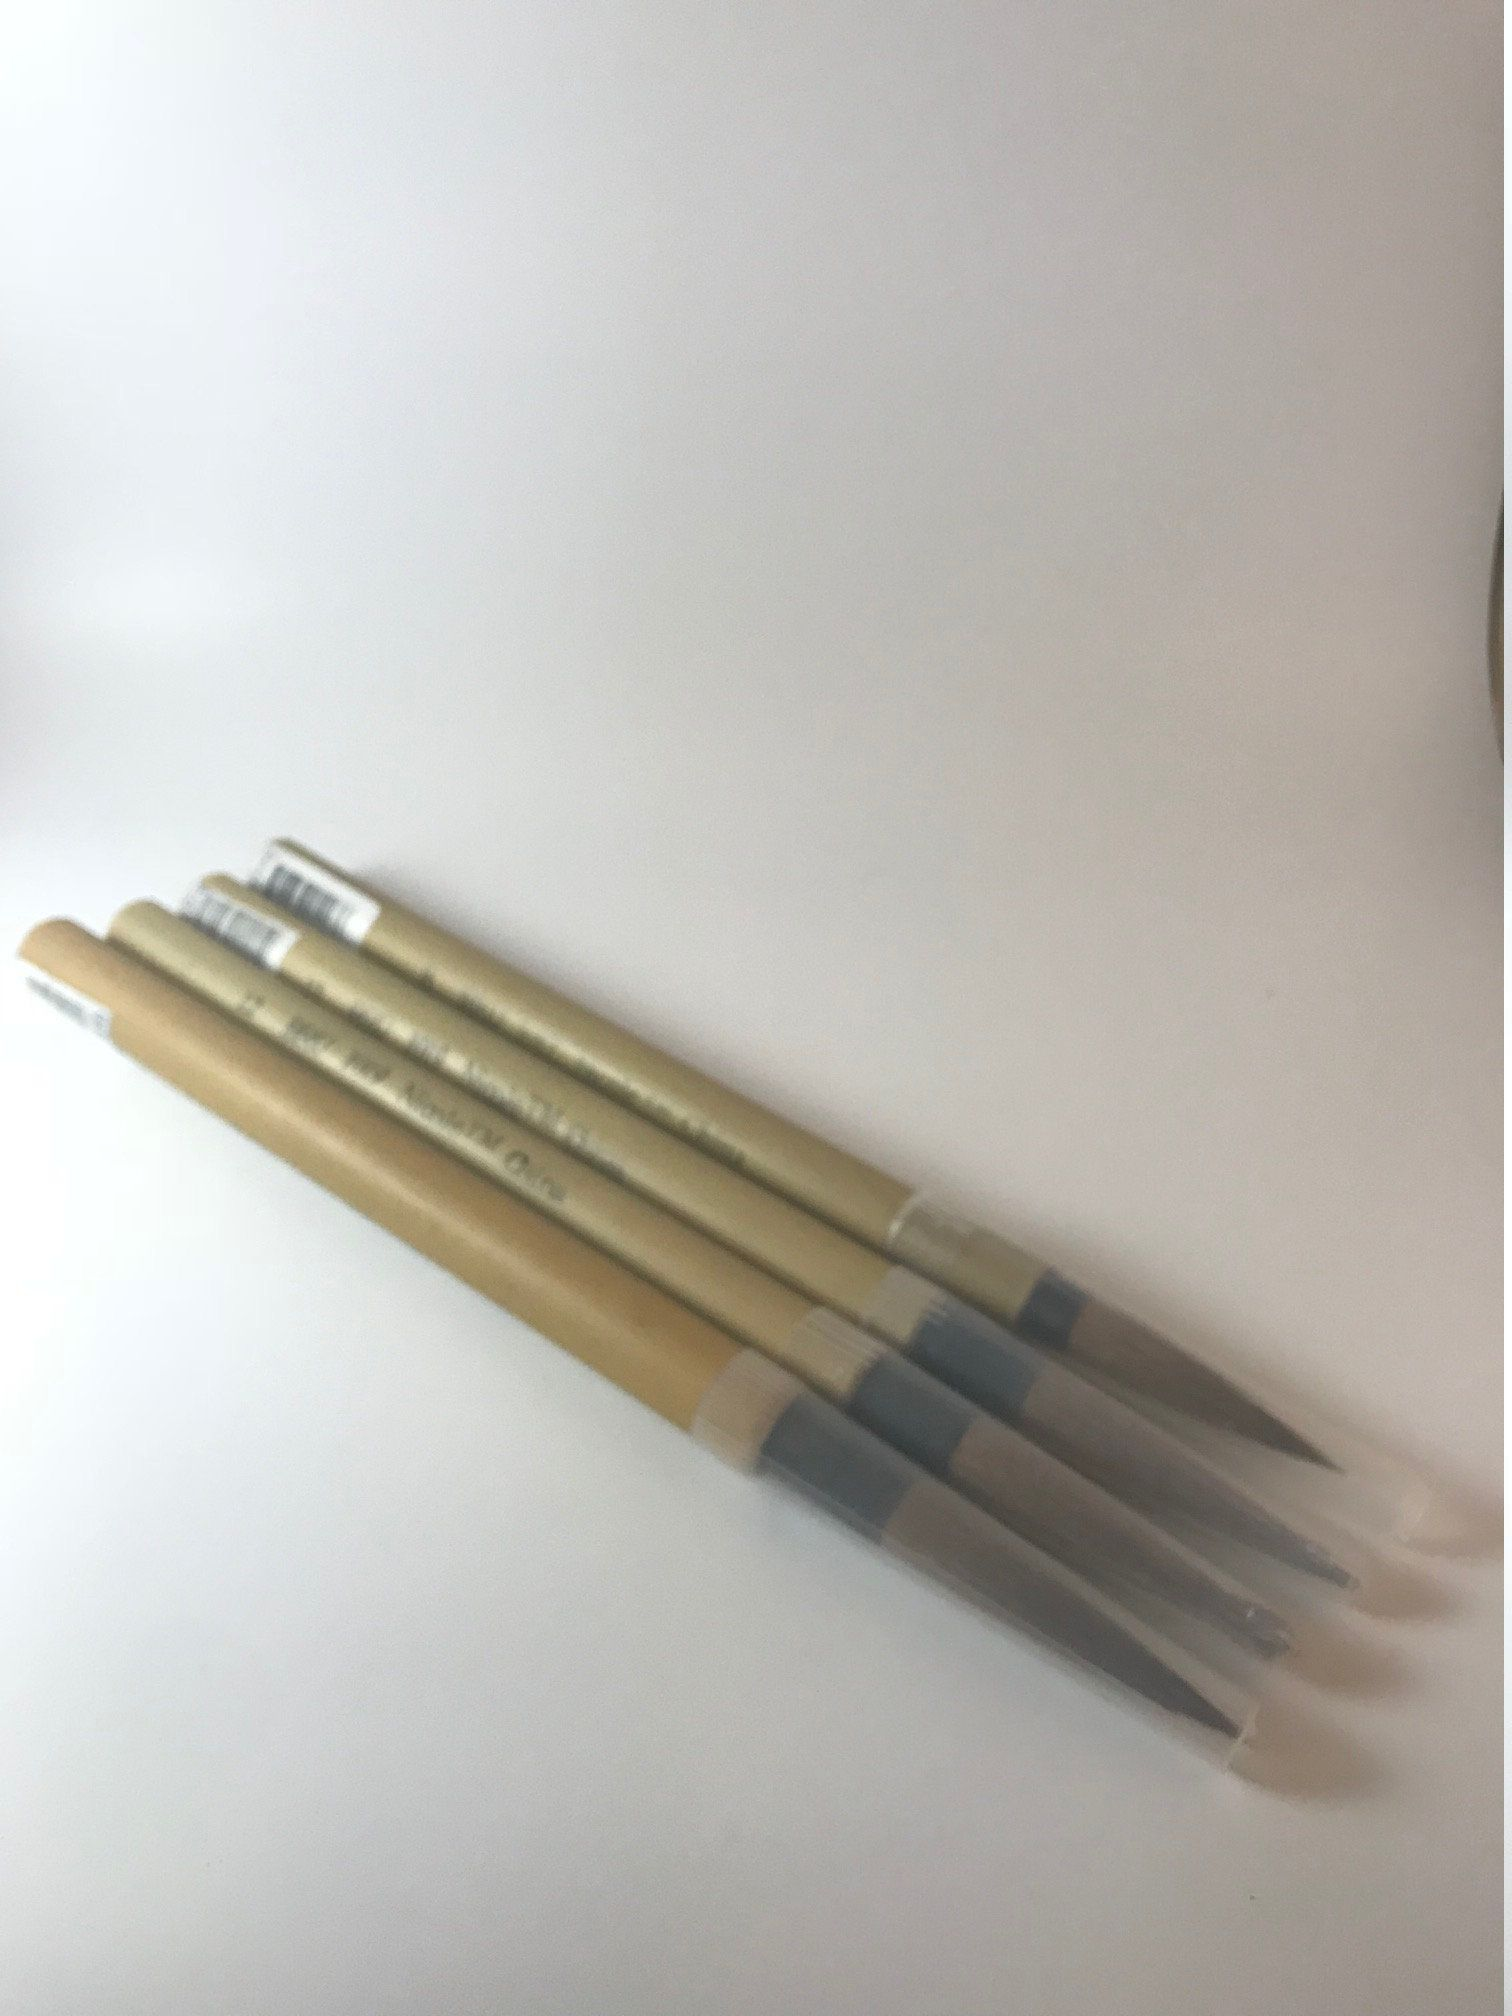 Bamboo Artist Japanese Sumi Painting Brush Set 4 Paint Brushes Ink